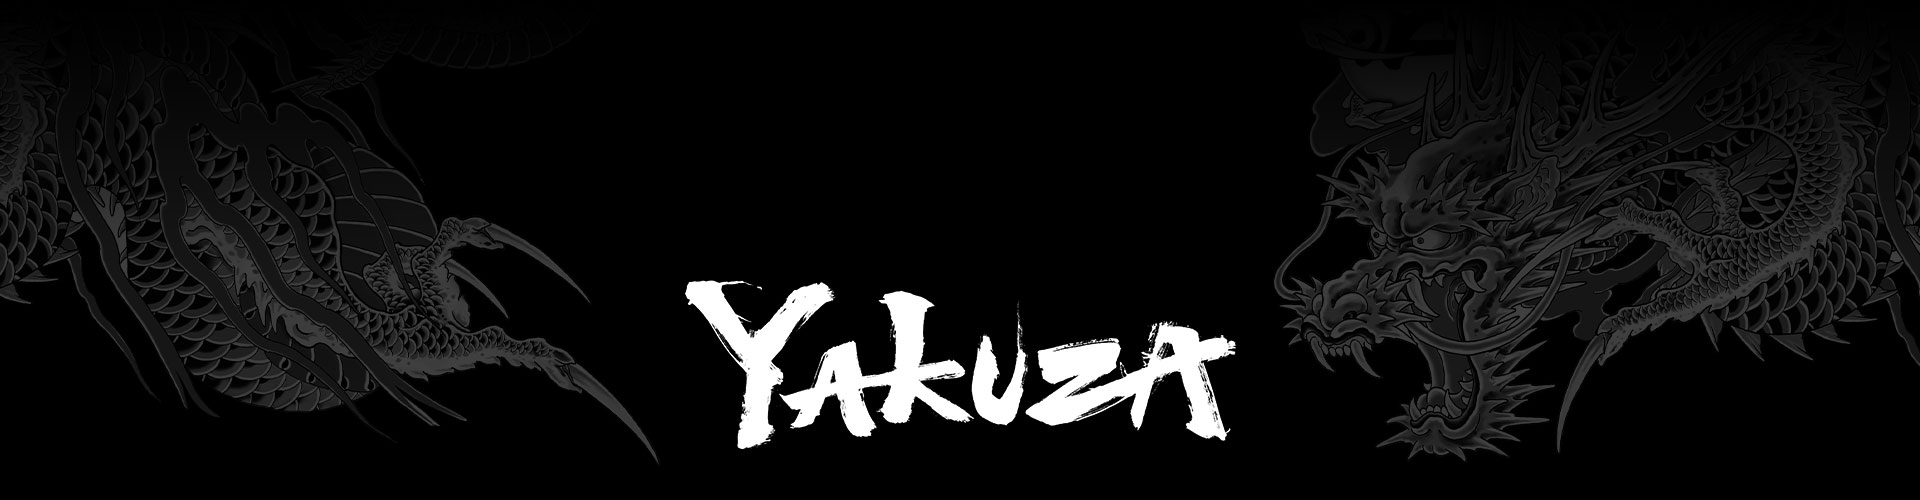 Yakuza franchise logo with a stylized grey dragon tattoo background.